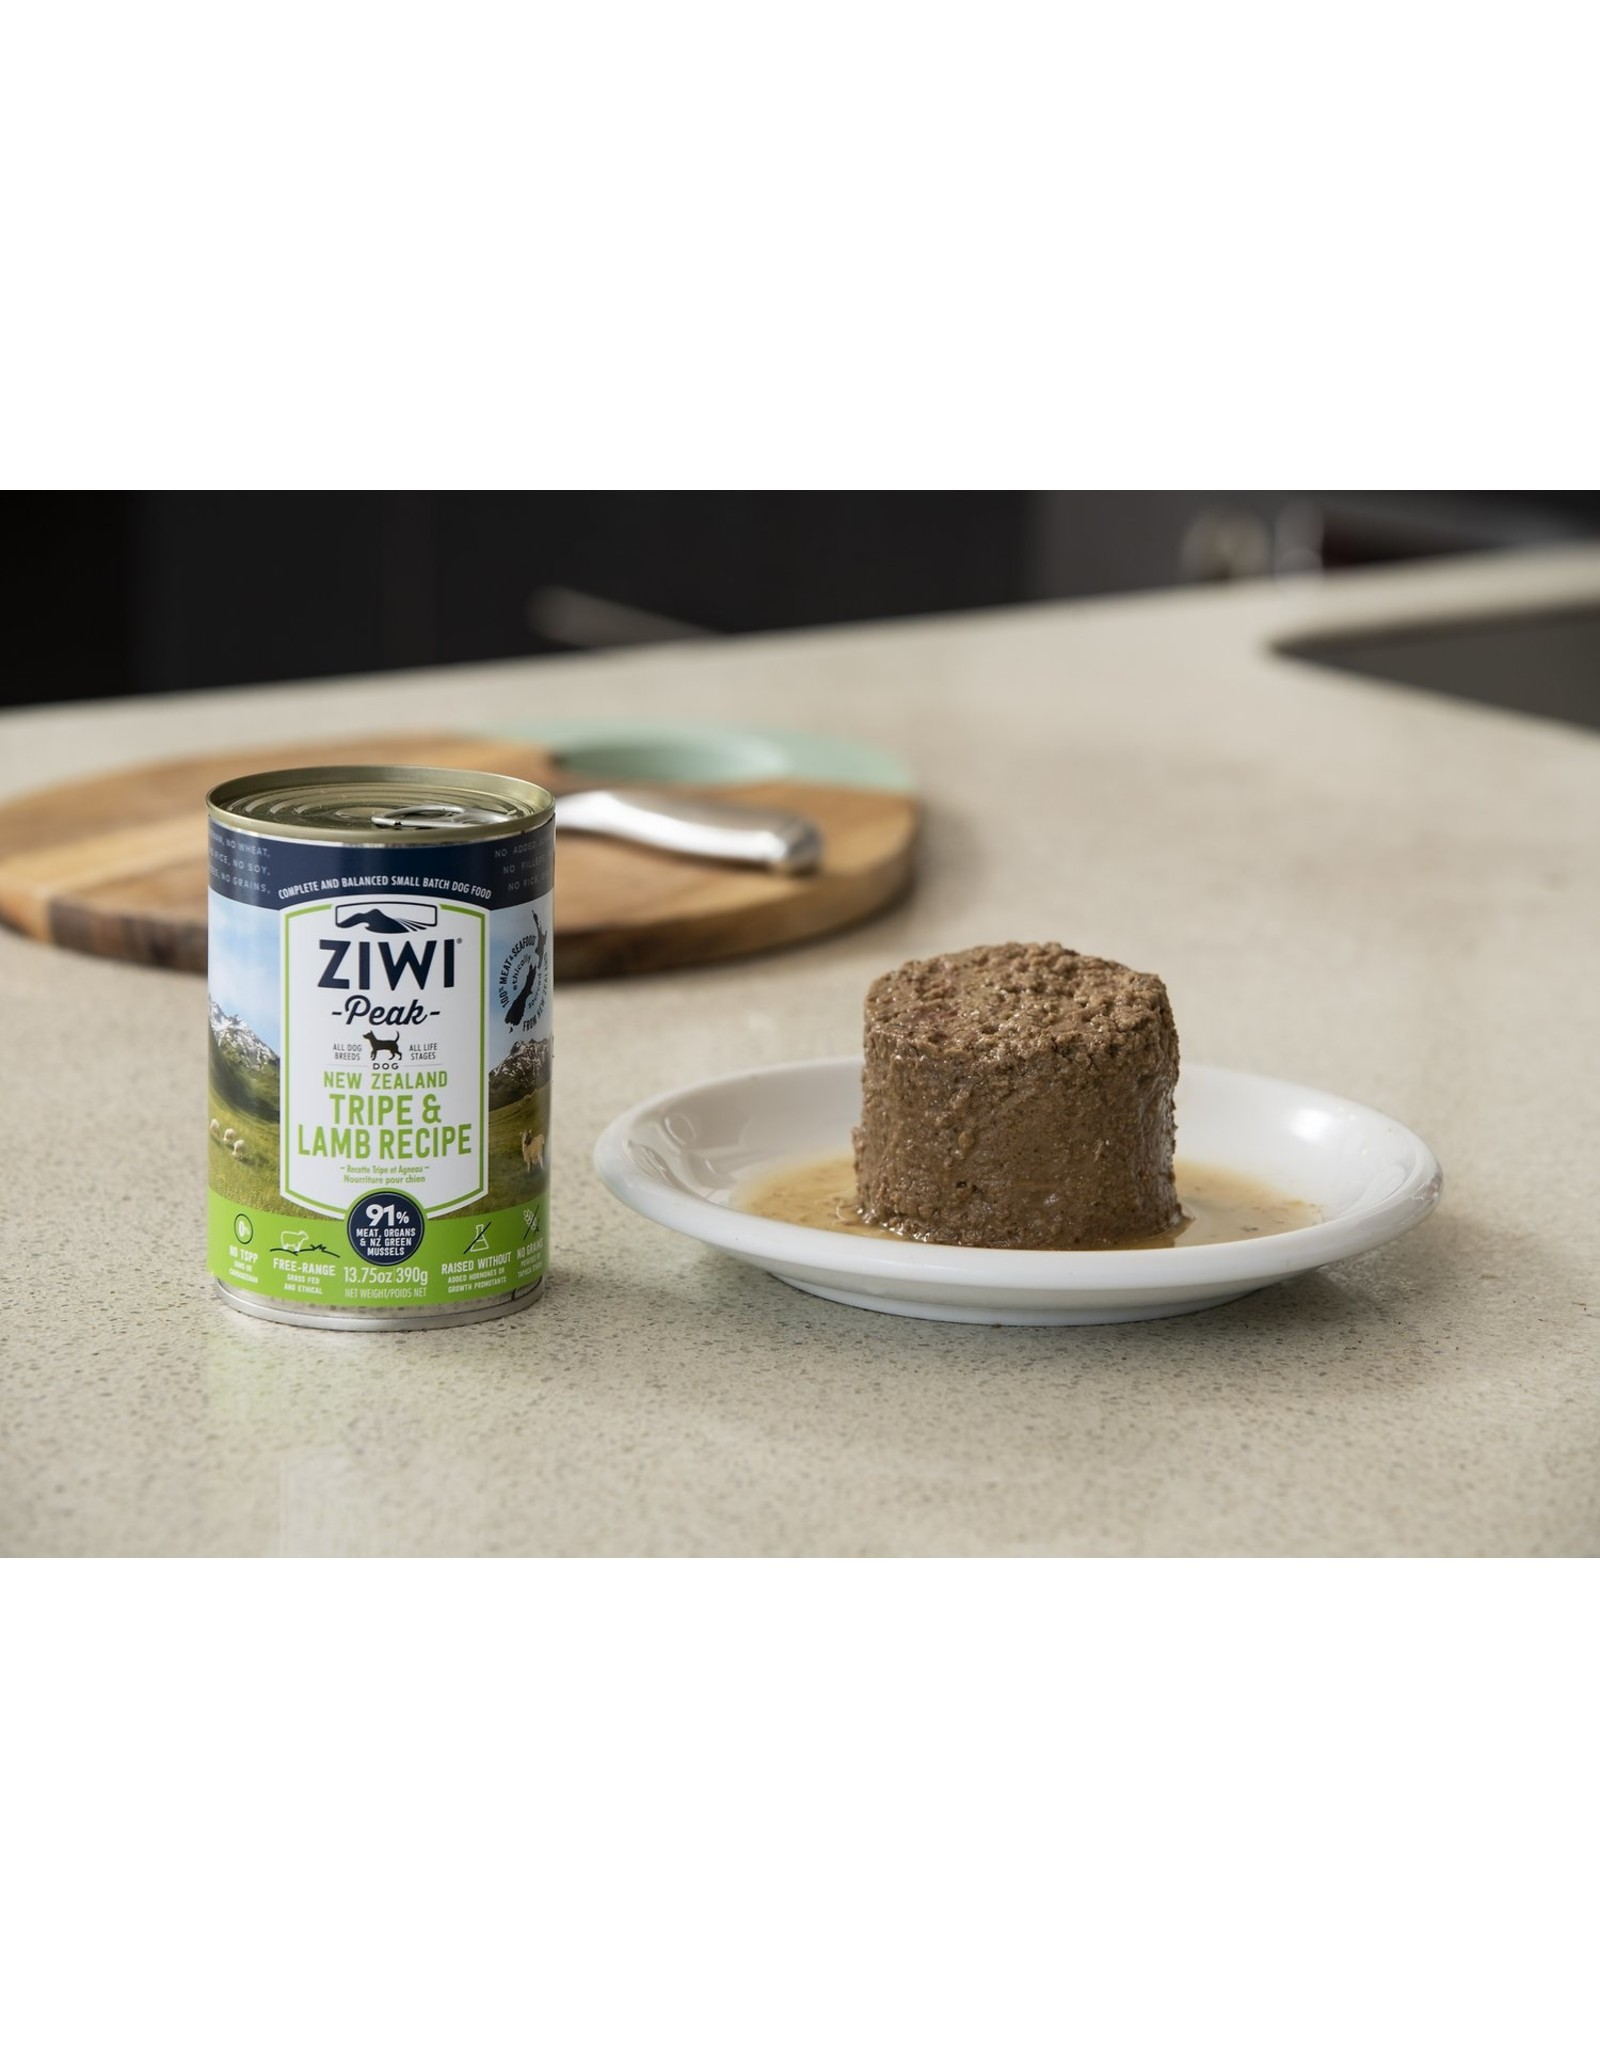 Ziwi Peak ZIWI PEAK DOG NEW ZEALAND TRIPE & LAMB RECIPE 13.75OZ